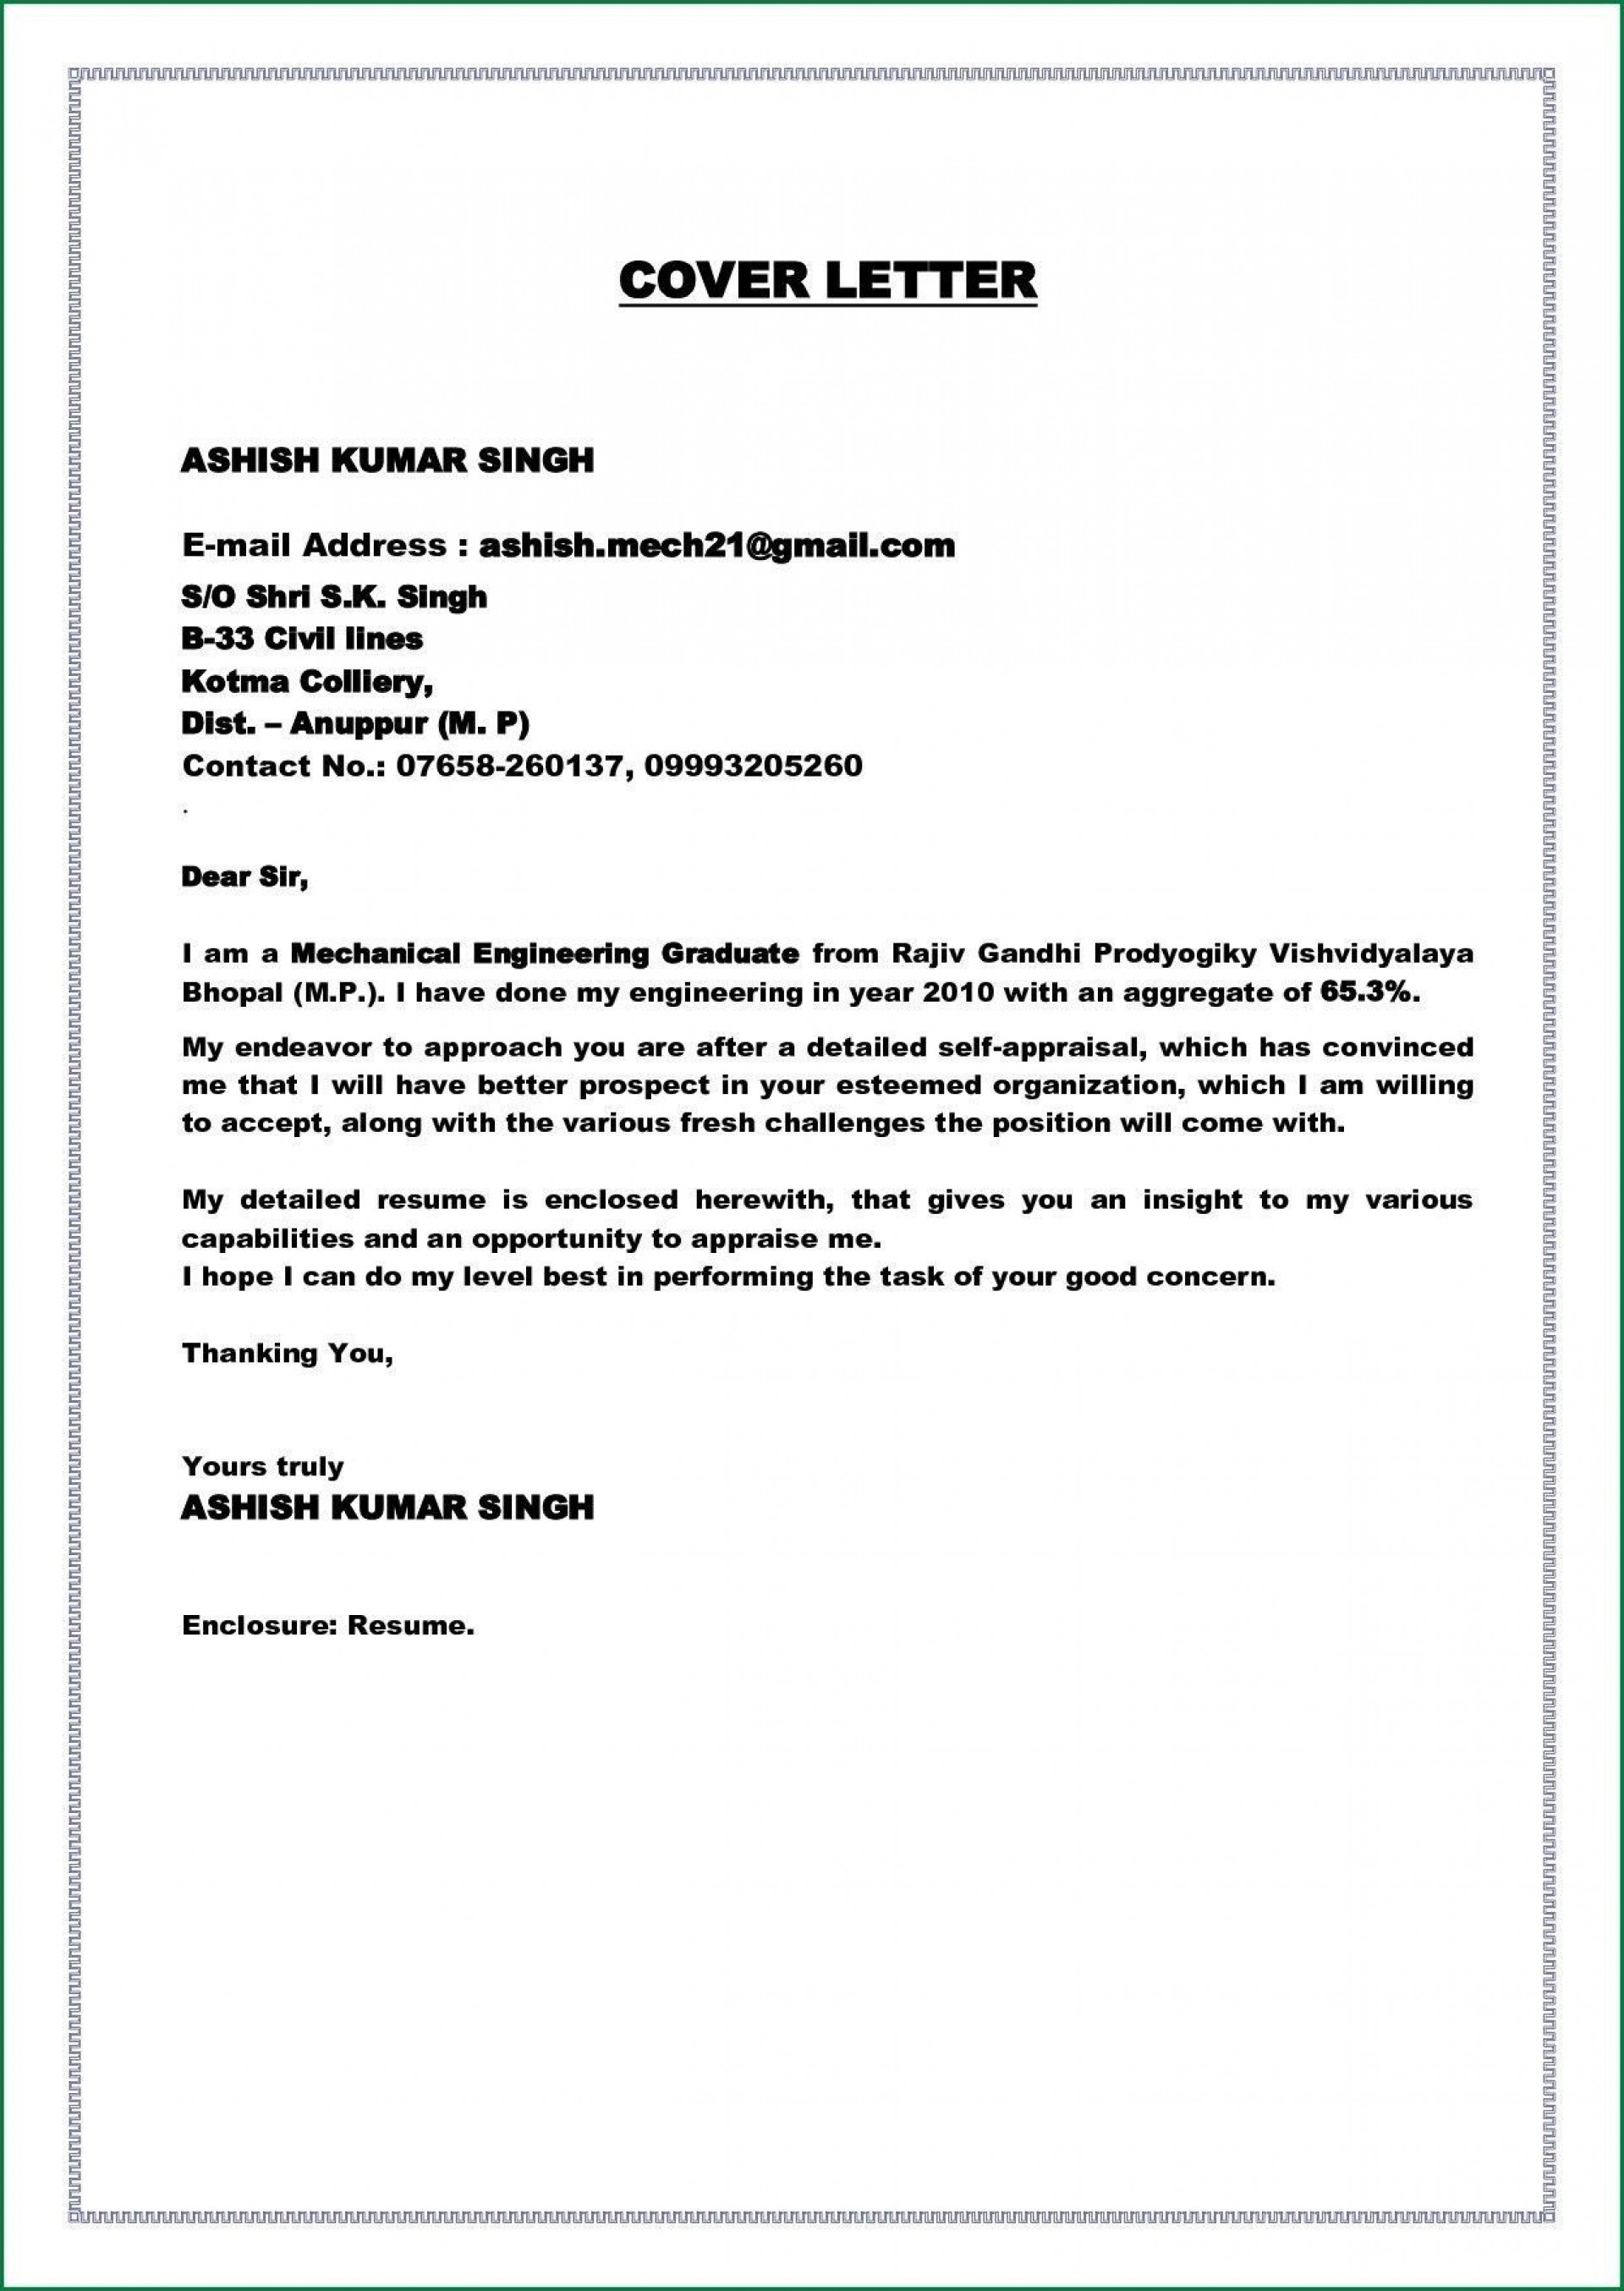 005 Fearsome Cover Letter Sample Template For Fresh Graduate In Marketing Concept 1920